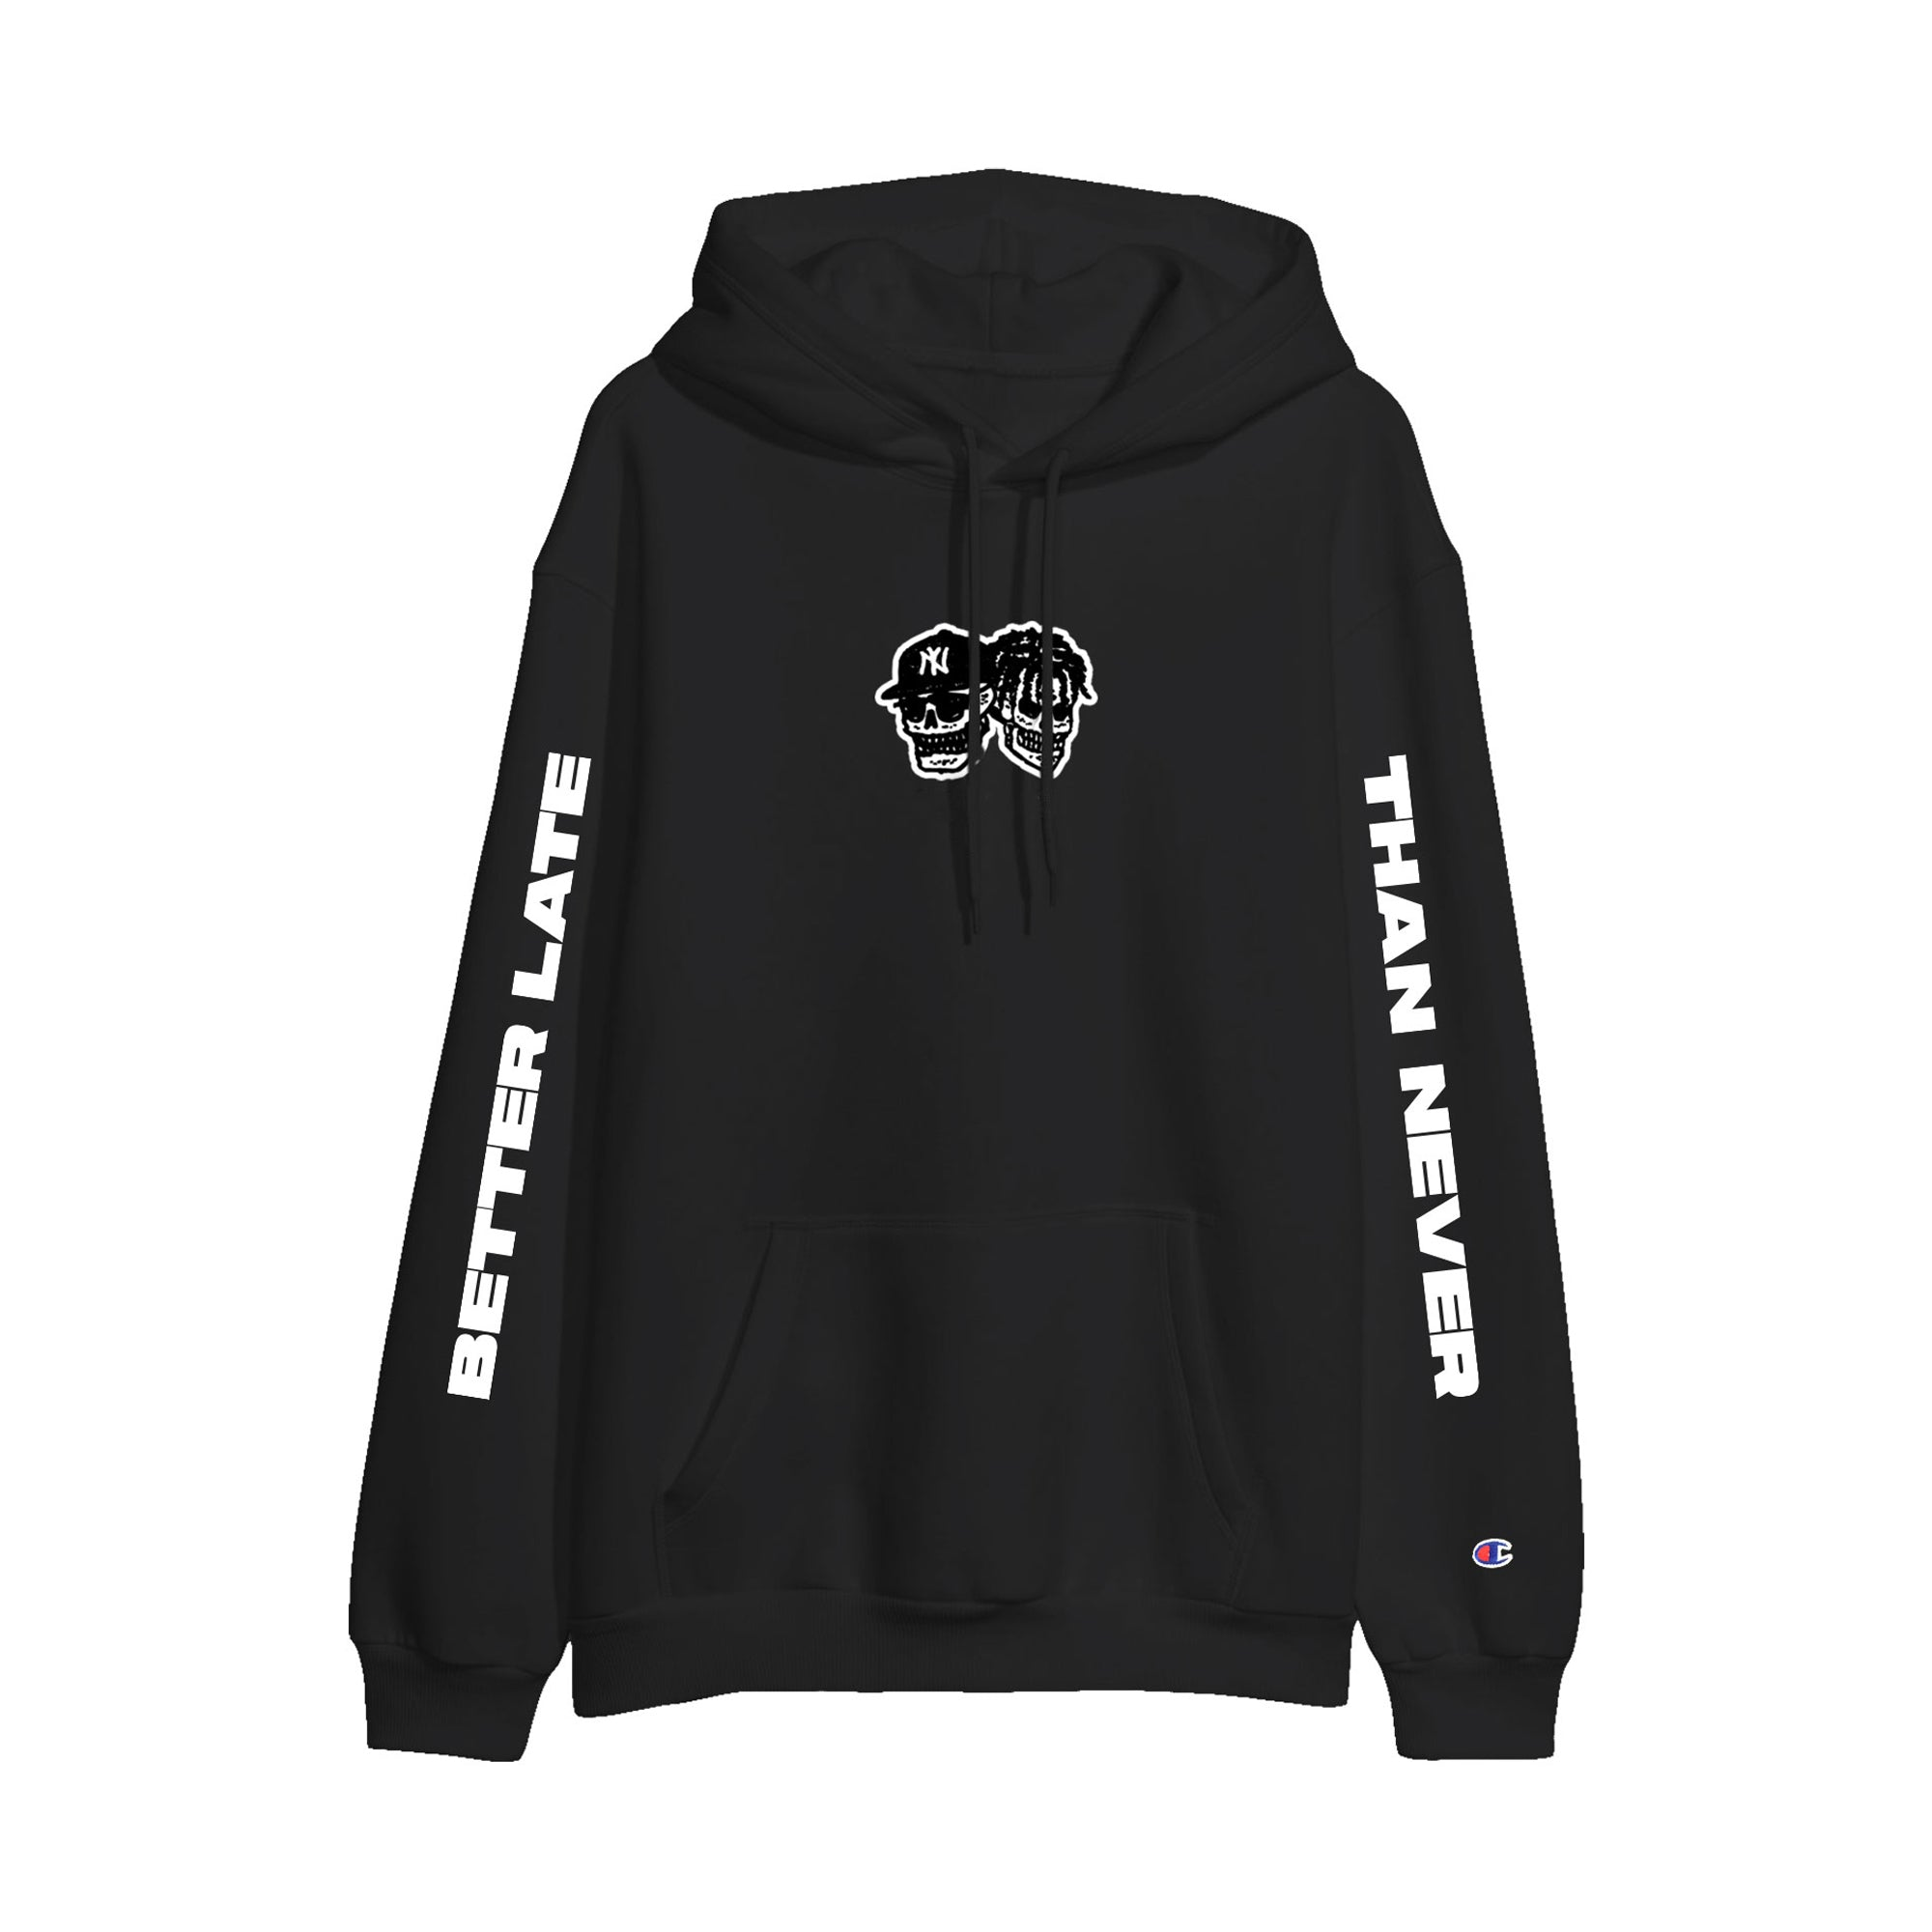 BLTN Tour x Champion Pull Over Hoodie